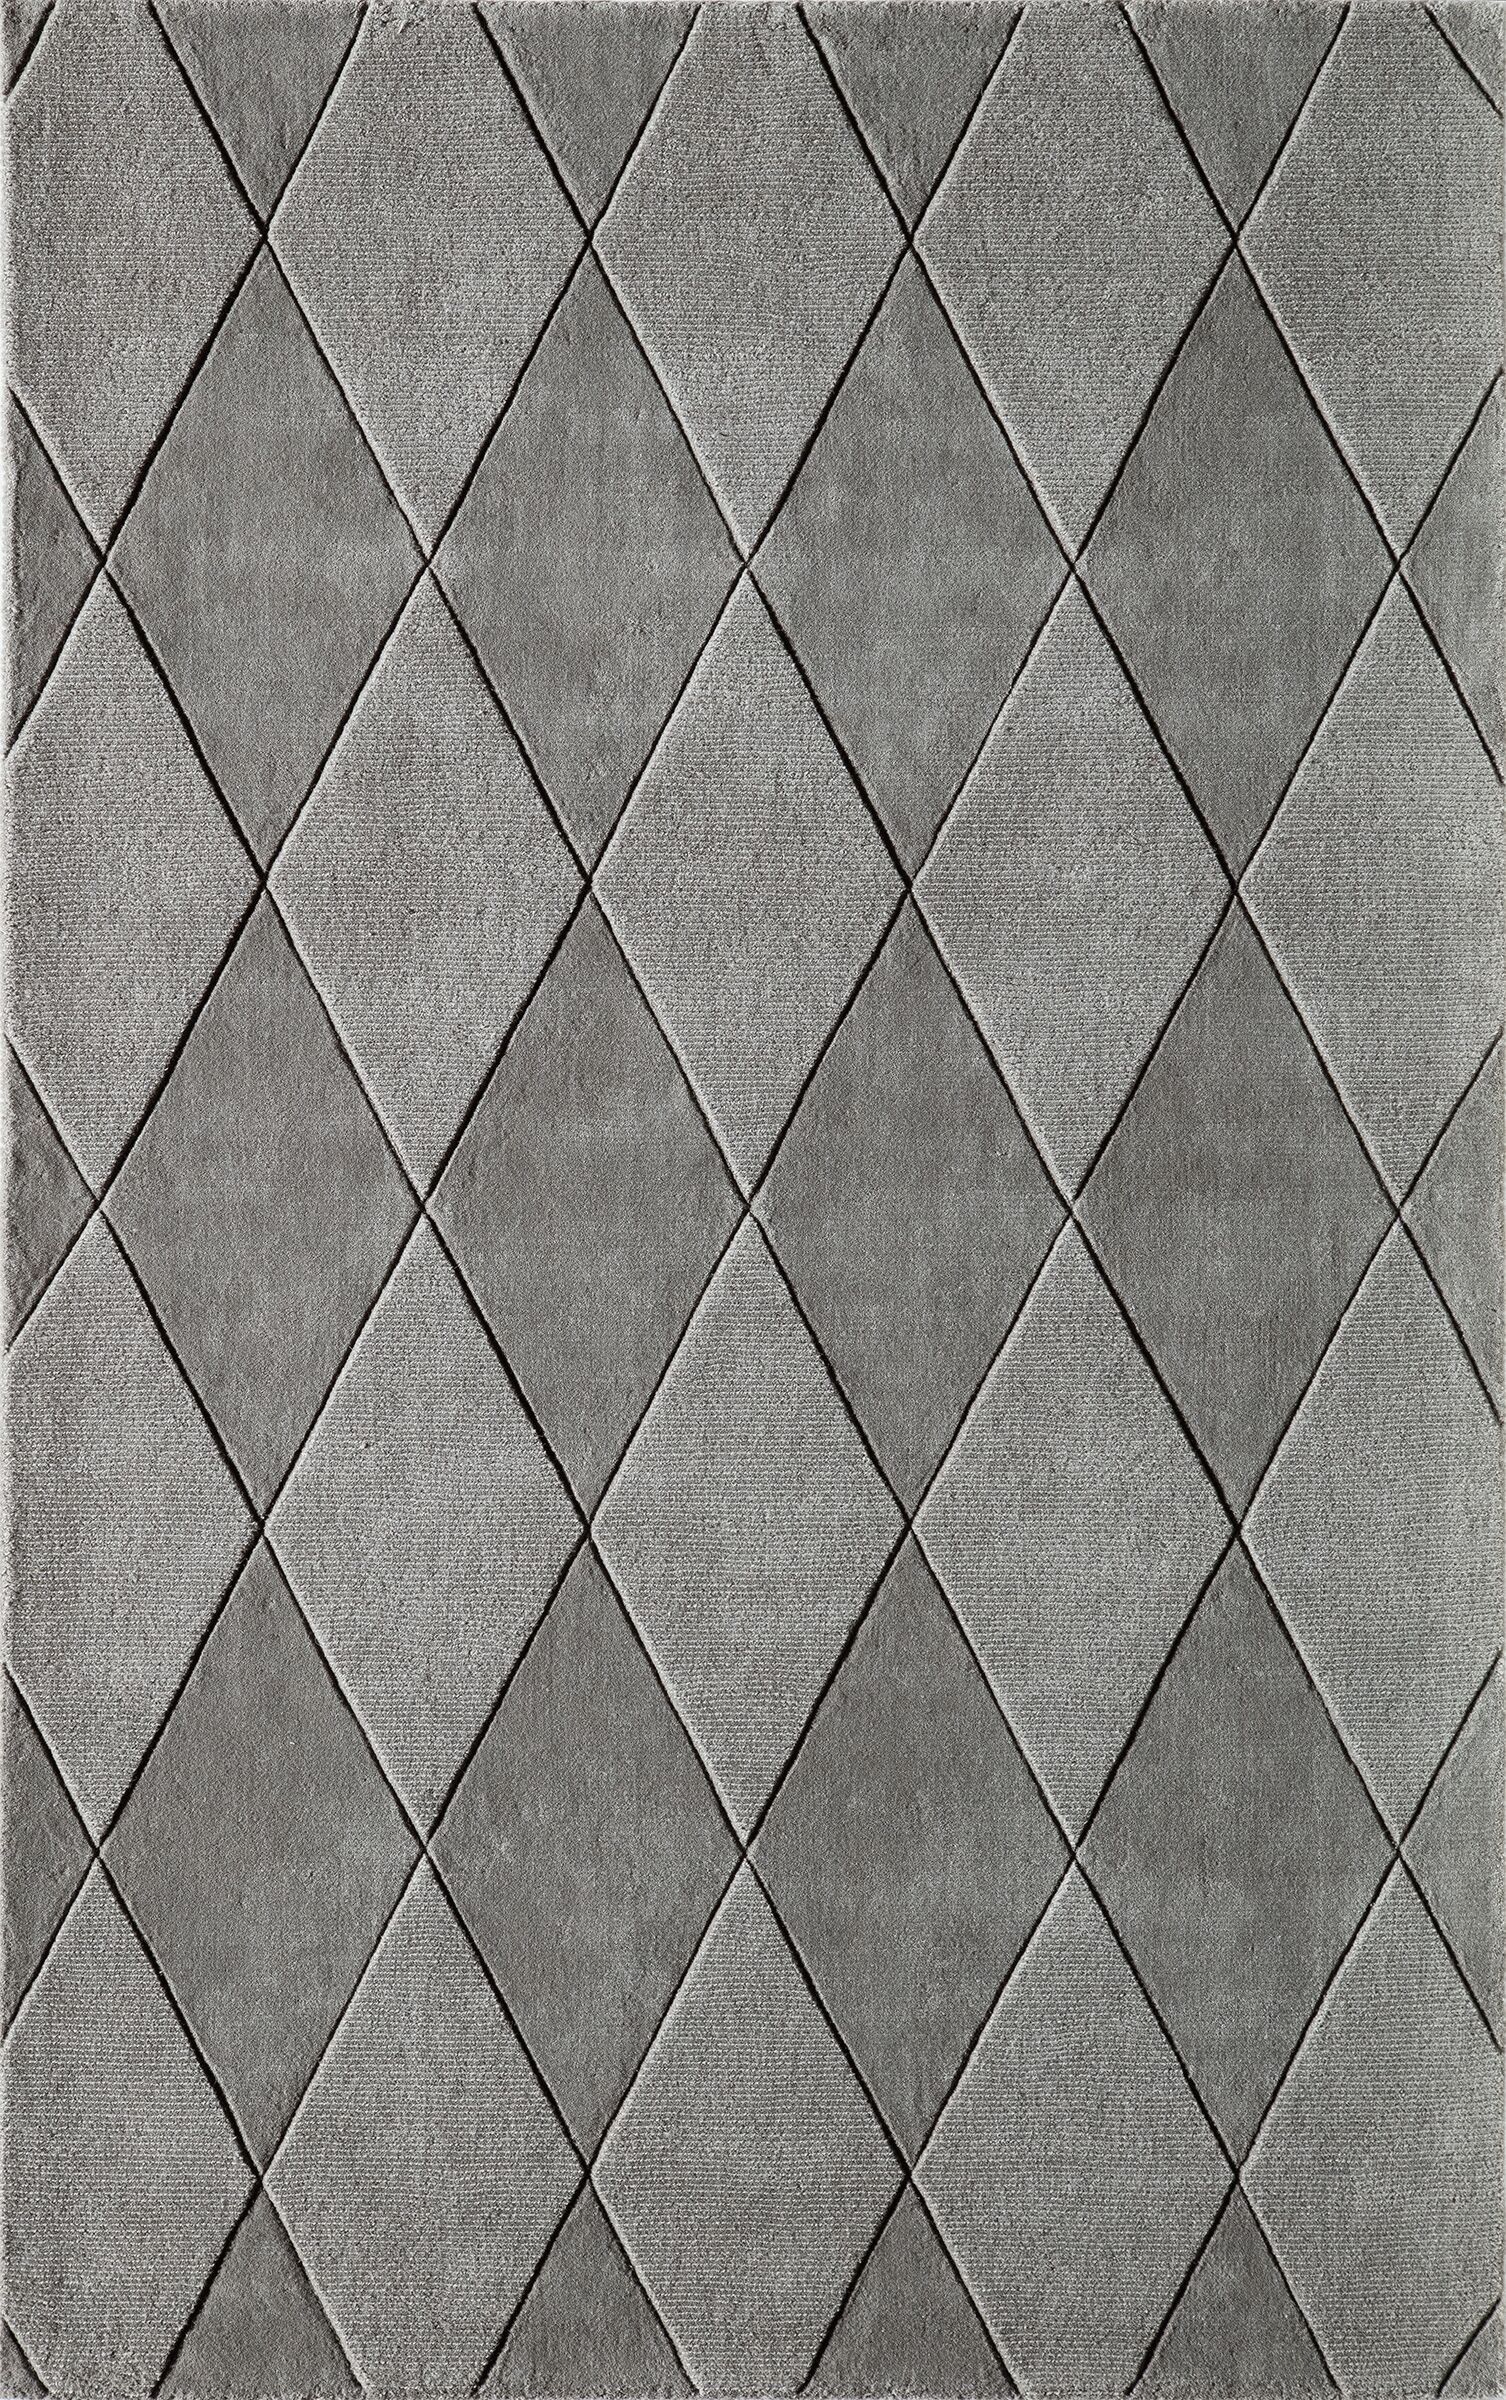 Bristol Hand-Tufted Gray Area Rug Rug Size: Rectangle 8' x 11'